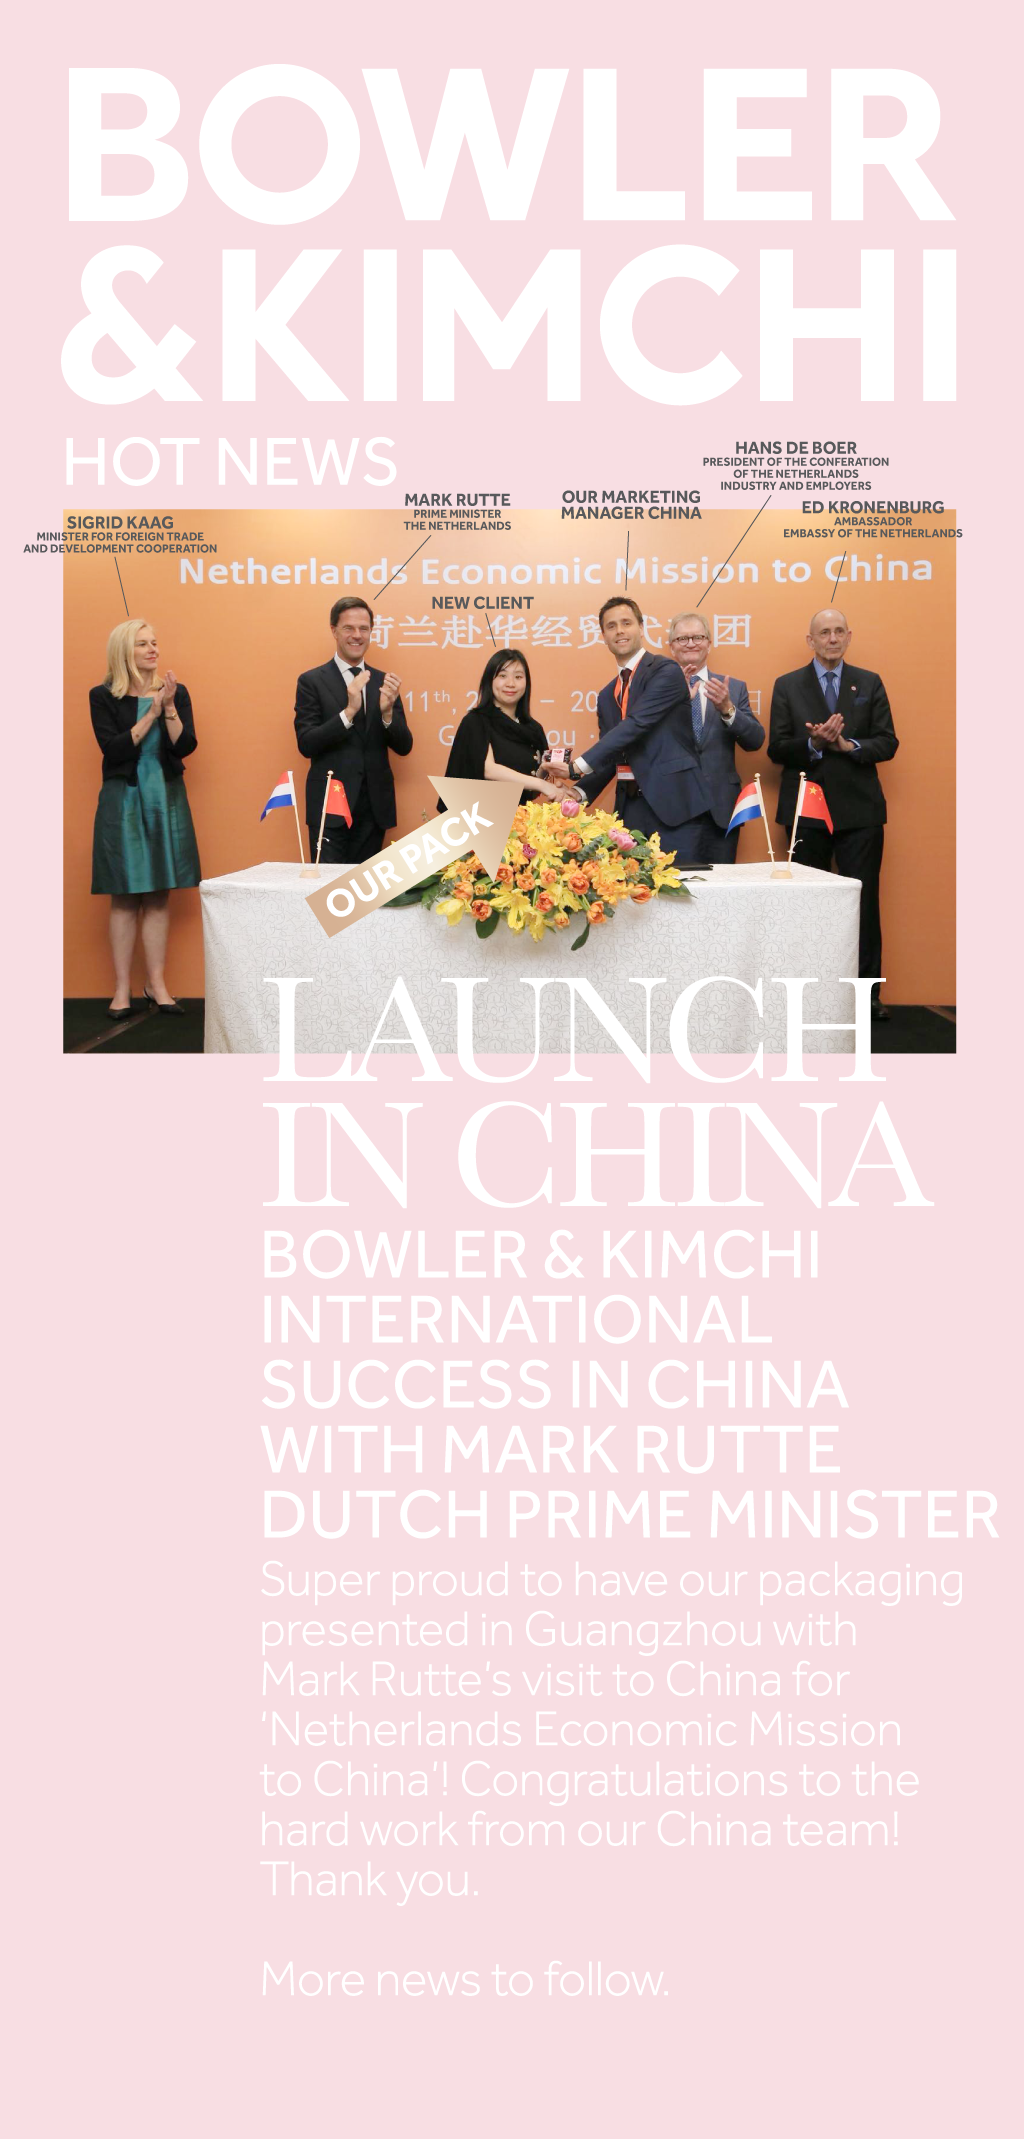 Bowler & Kimchi, nice to meet you. LAUNCHIN CHINA  BOWLER & KIMCHI INTERNATIONAL SUCCESS IN CHINA WITH MARK RUTTE DUTCH PRIME MINISTER   Super proud to have our packaging presented in Guangzhou with Mark Rutte's visit to China for 'Netherlands Economic Mission to China'! Congratulations to the hard work from our China team! Thank you.     MARK RUTTE PRIME MINISTER THE NETHERLANDS